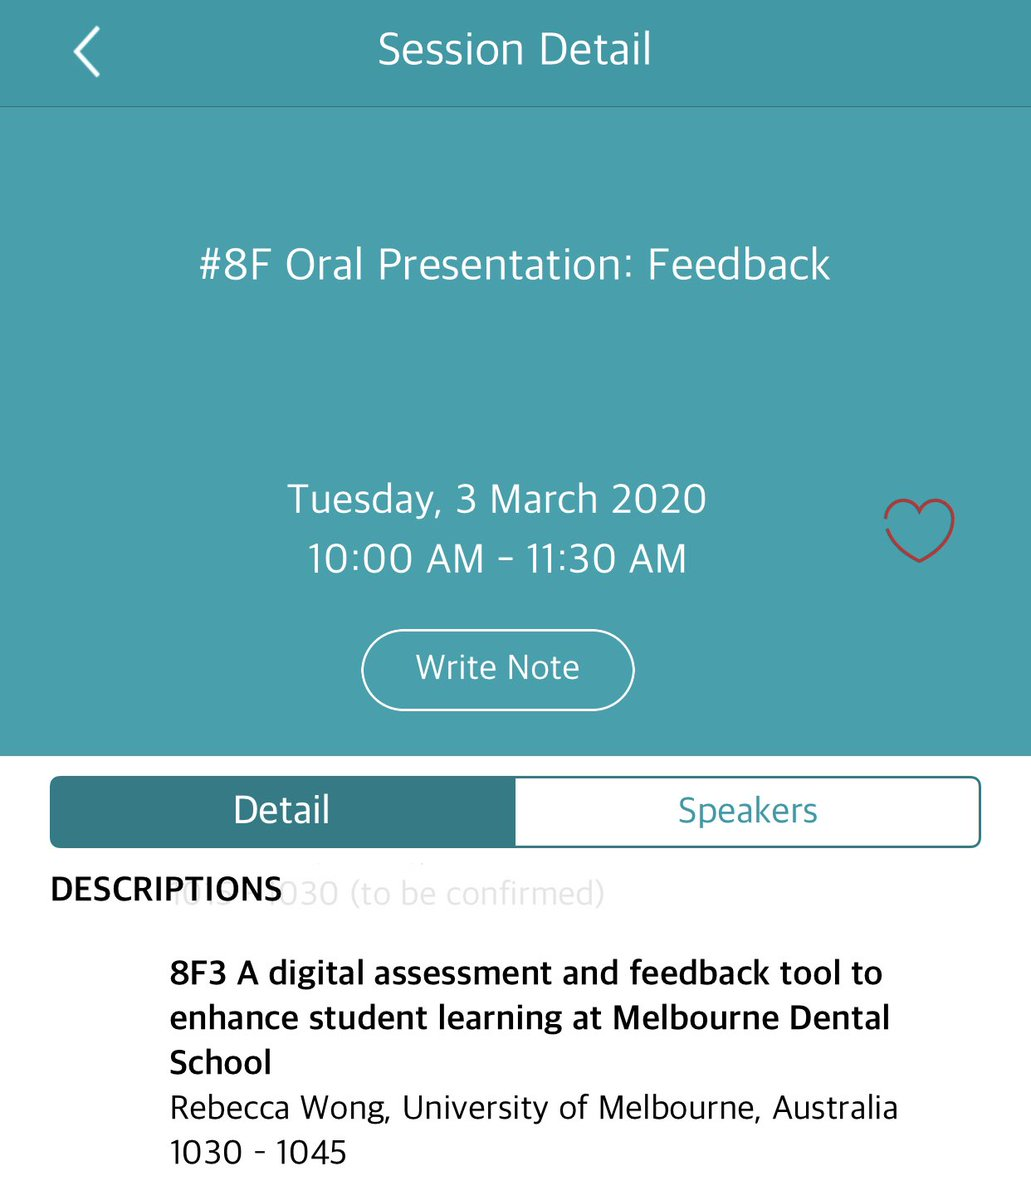 Looking forward to my 1st #Ottawa2020 presentation on object-based learning and work on #eosce with Rebecca from the Dental School. #ethics #professionaldevelopment #clinicalreasoning #feedback @UniMelbDOVS @UniMelbMDHS @unimelb @OptometryAus @AMEE_Online https://t.co/7ctpw0u9EH